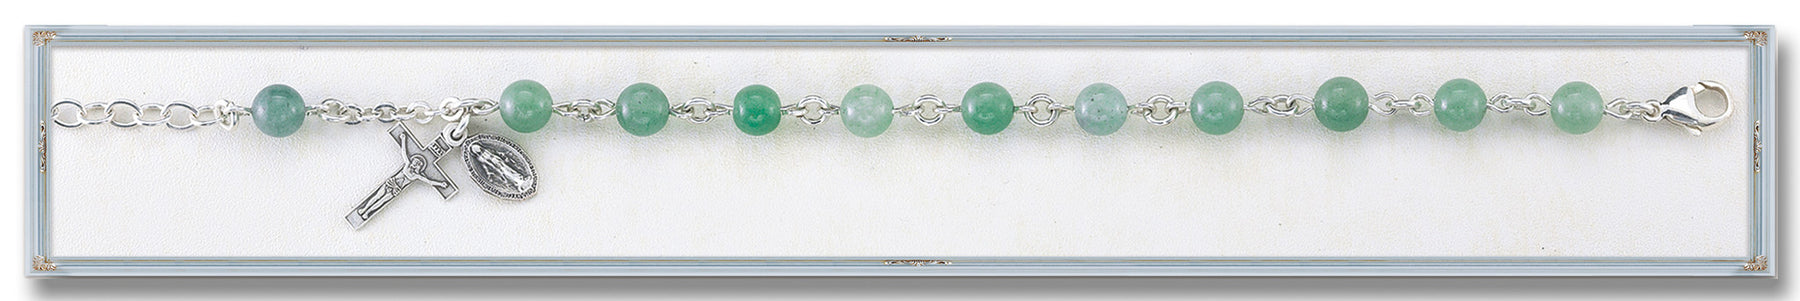 genuine_adventurine_round_sterling_bracelet